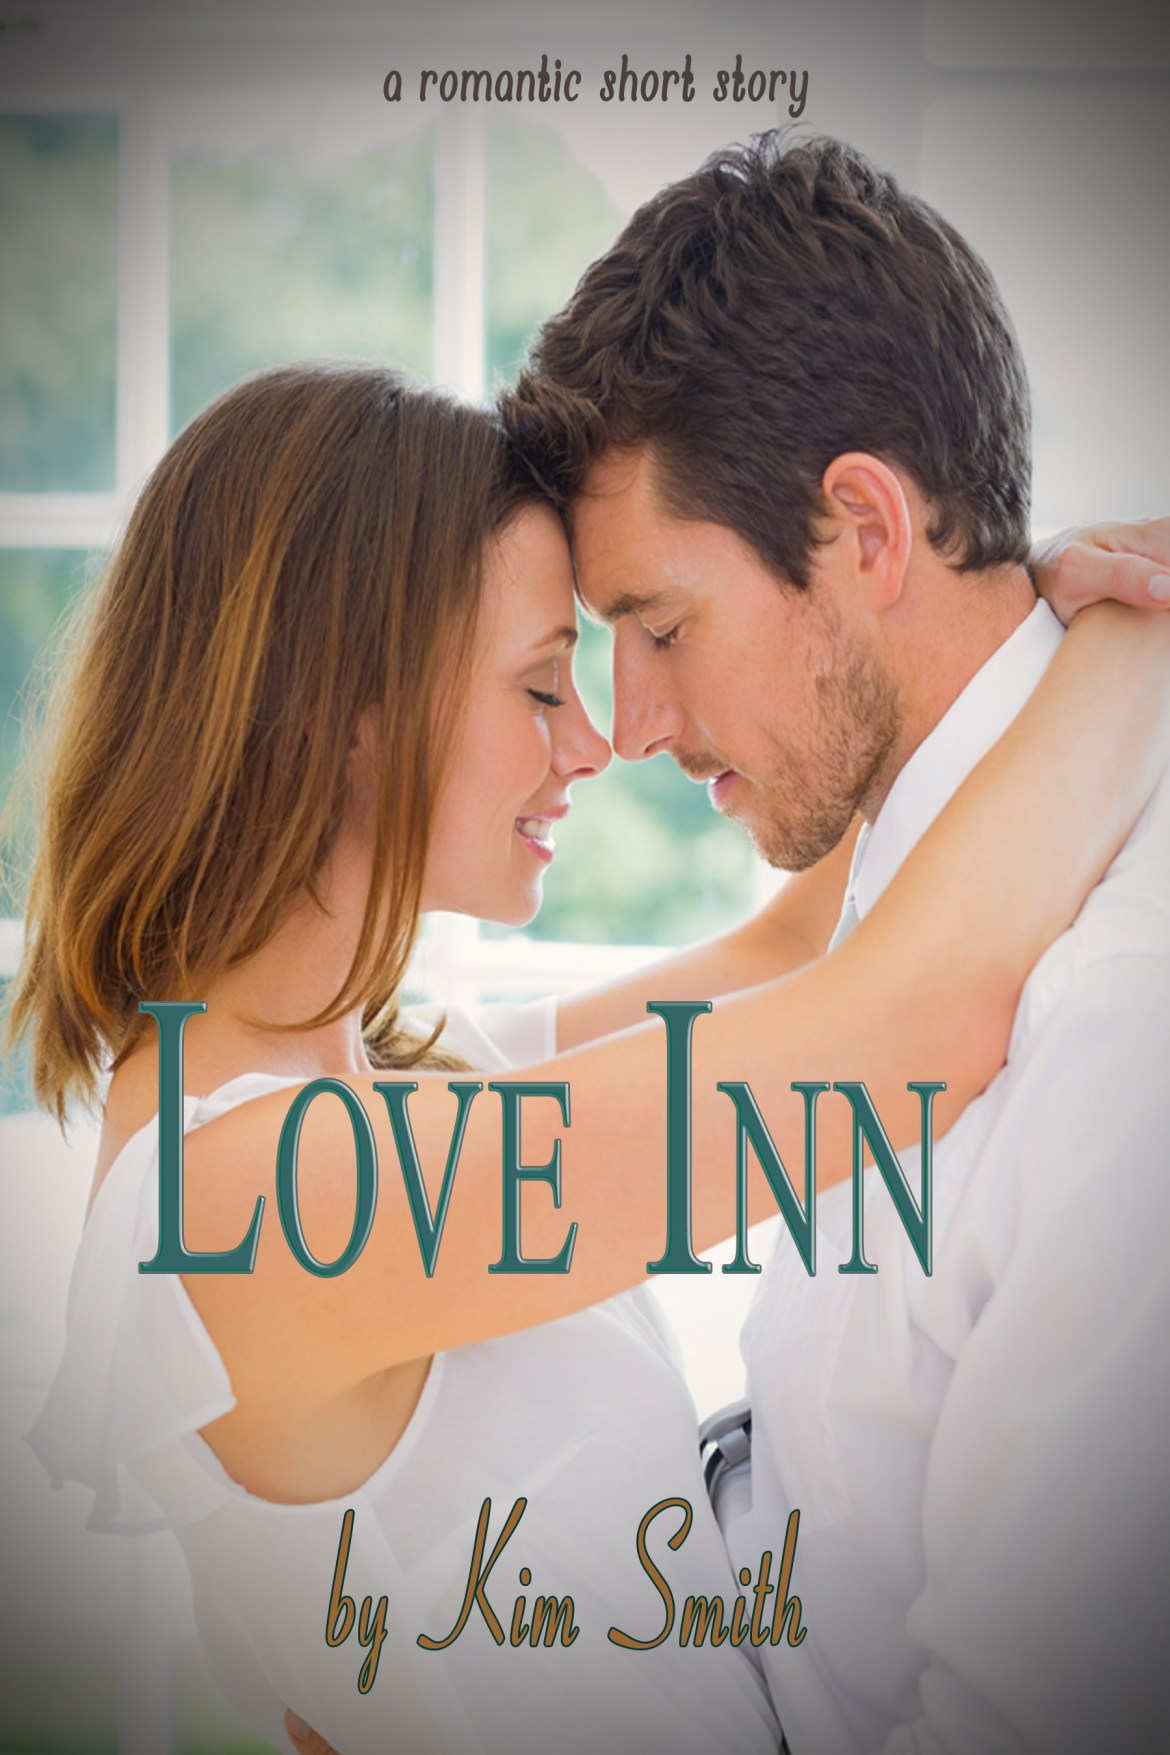 LOVE INN – A romantic short story